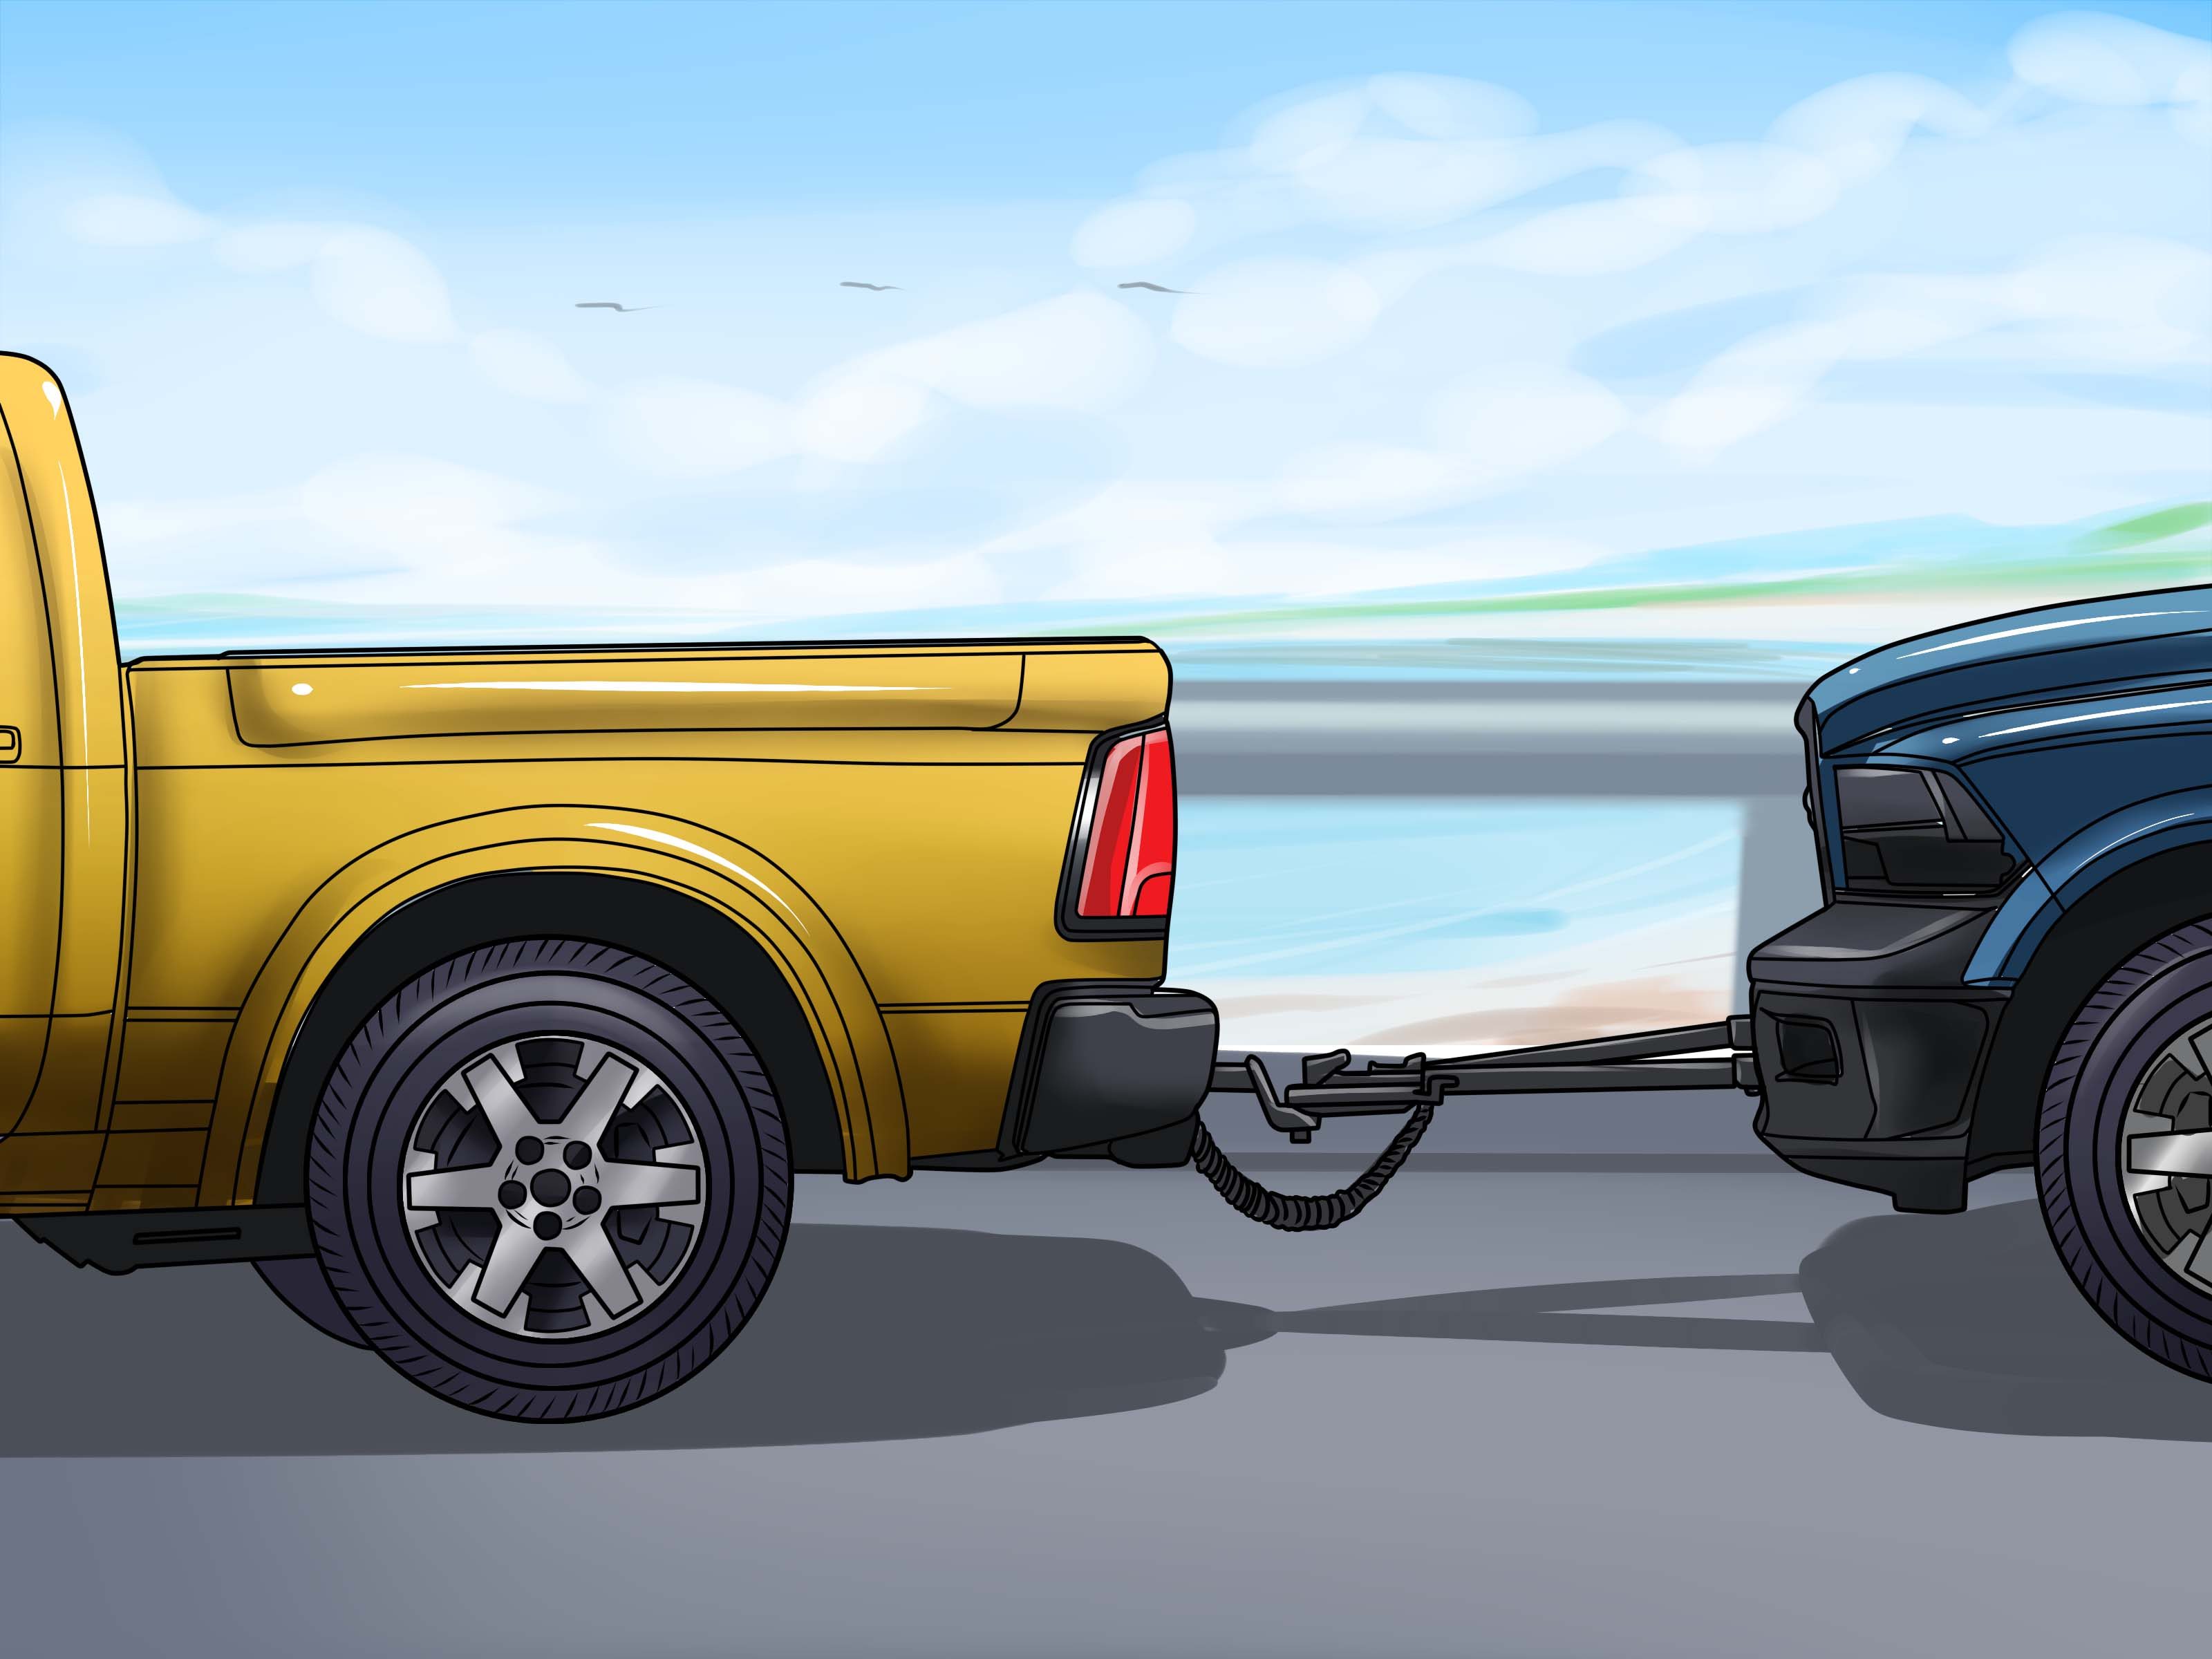 Towing Car How To Fit A Tow Bar To Your Car: 13 Steps (with Pictures)